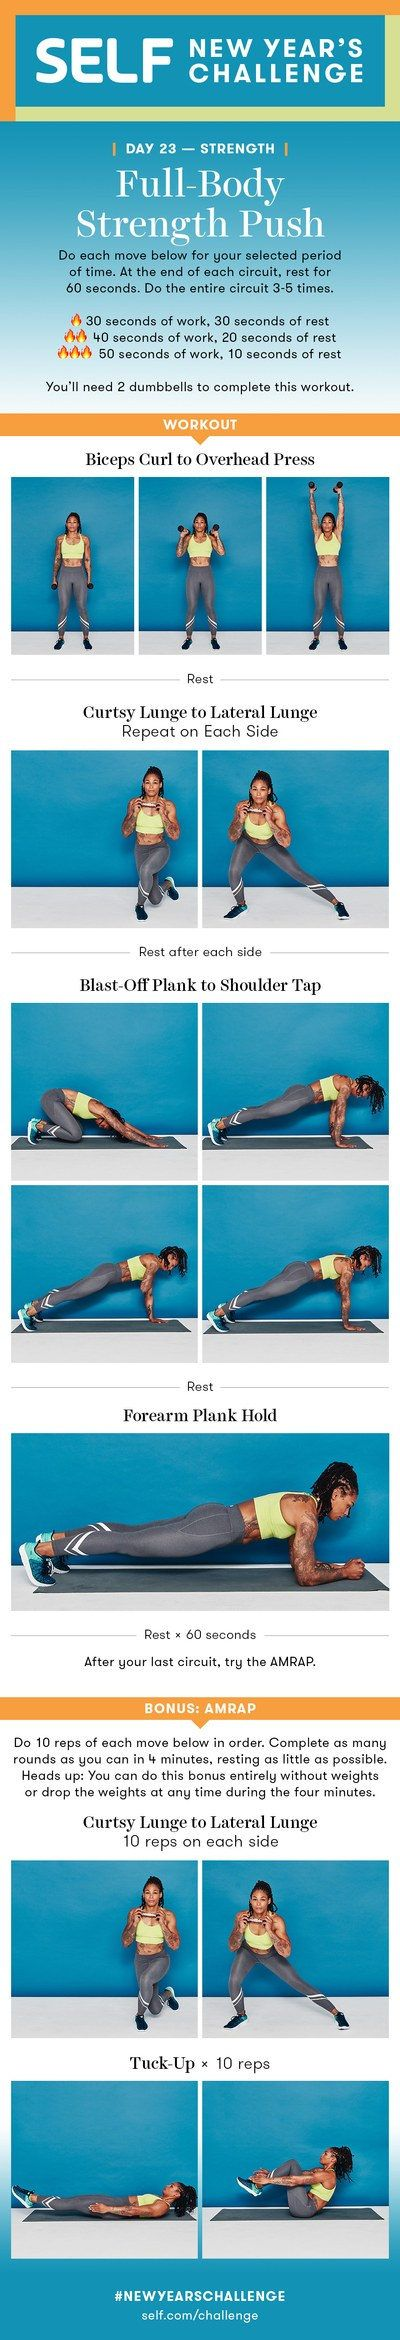 Full-Body Strength Workout With Dumbbells